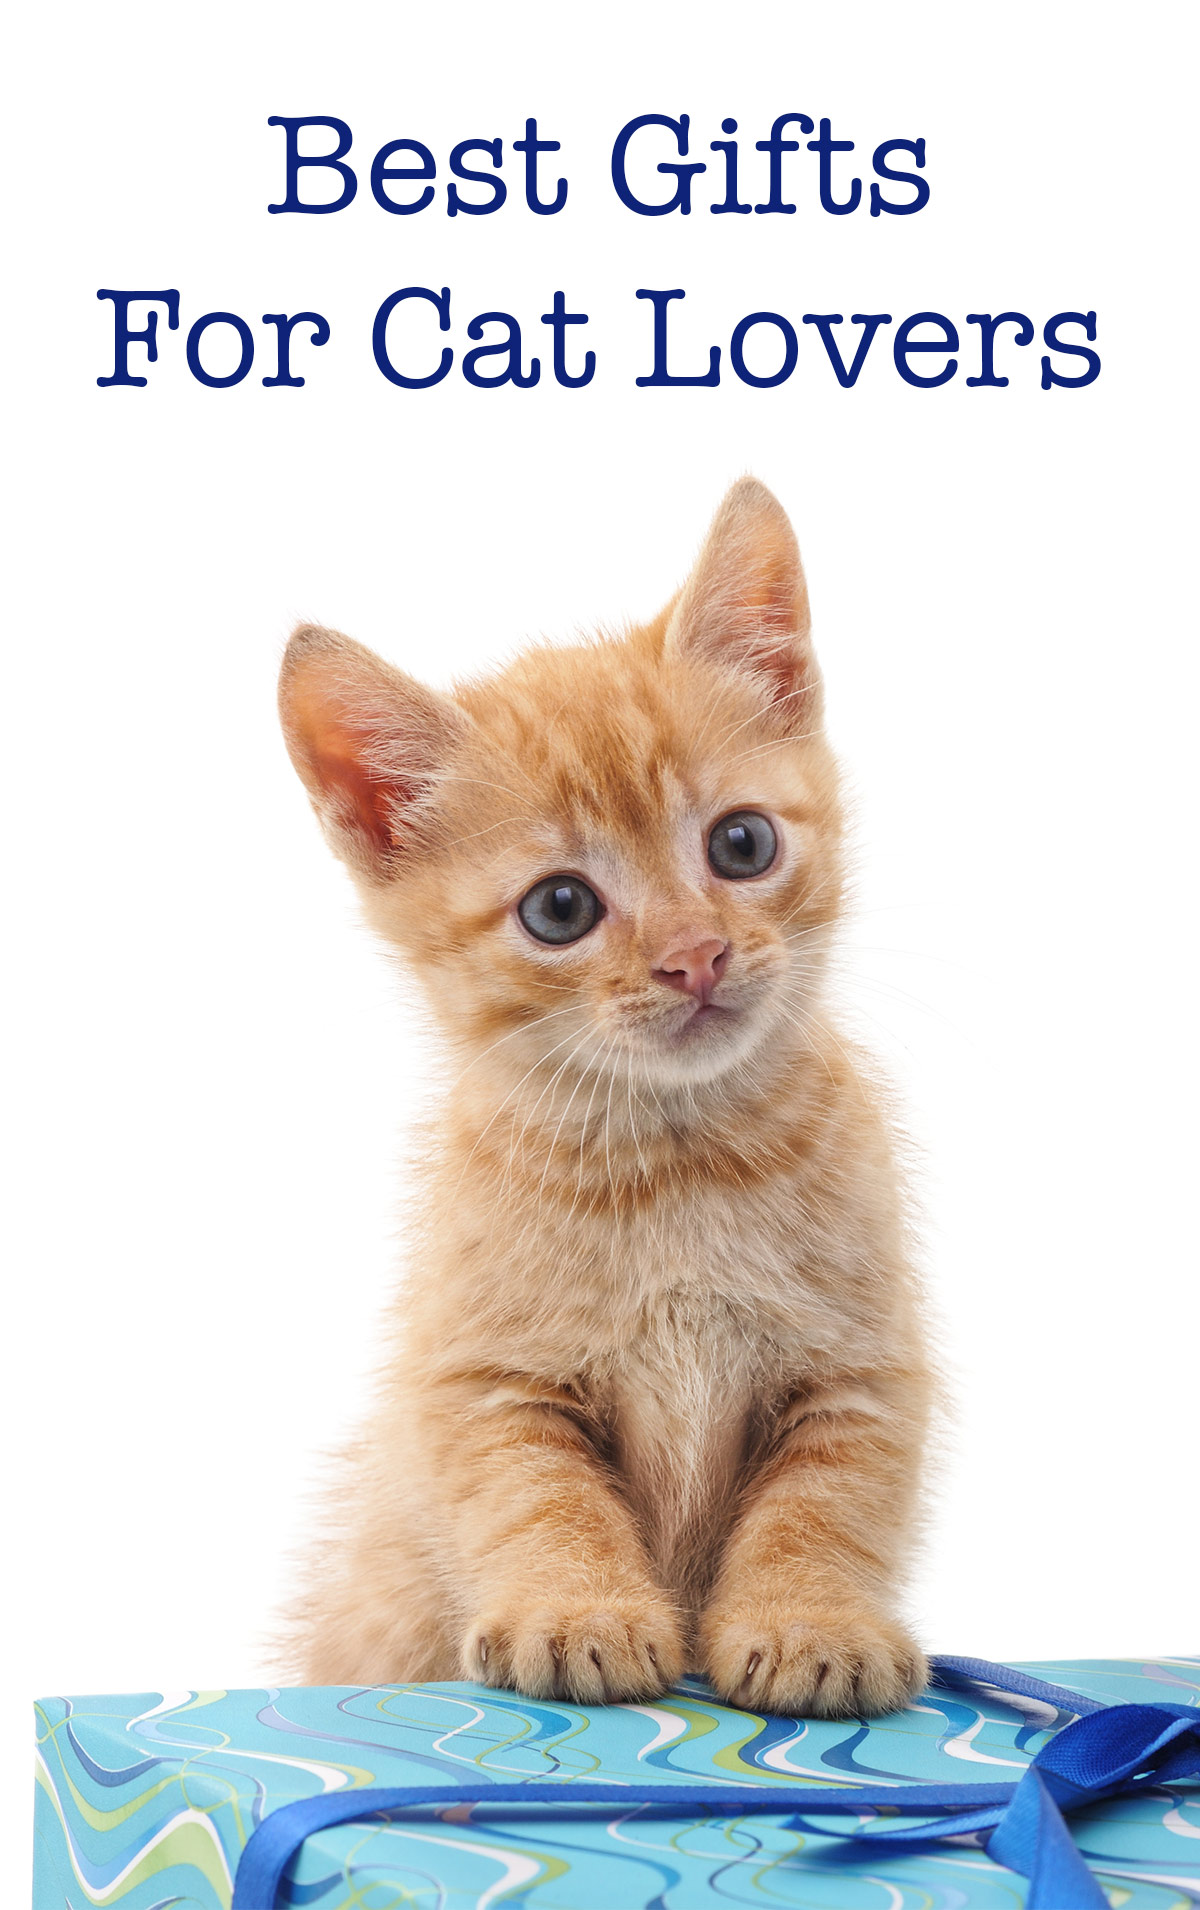 Best gifts for cat lovers 2017 cute cats for Best website for gifts